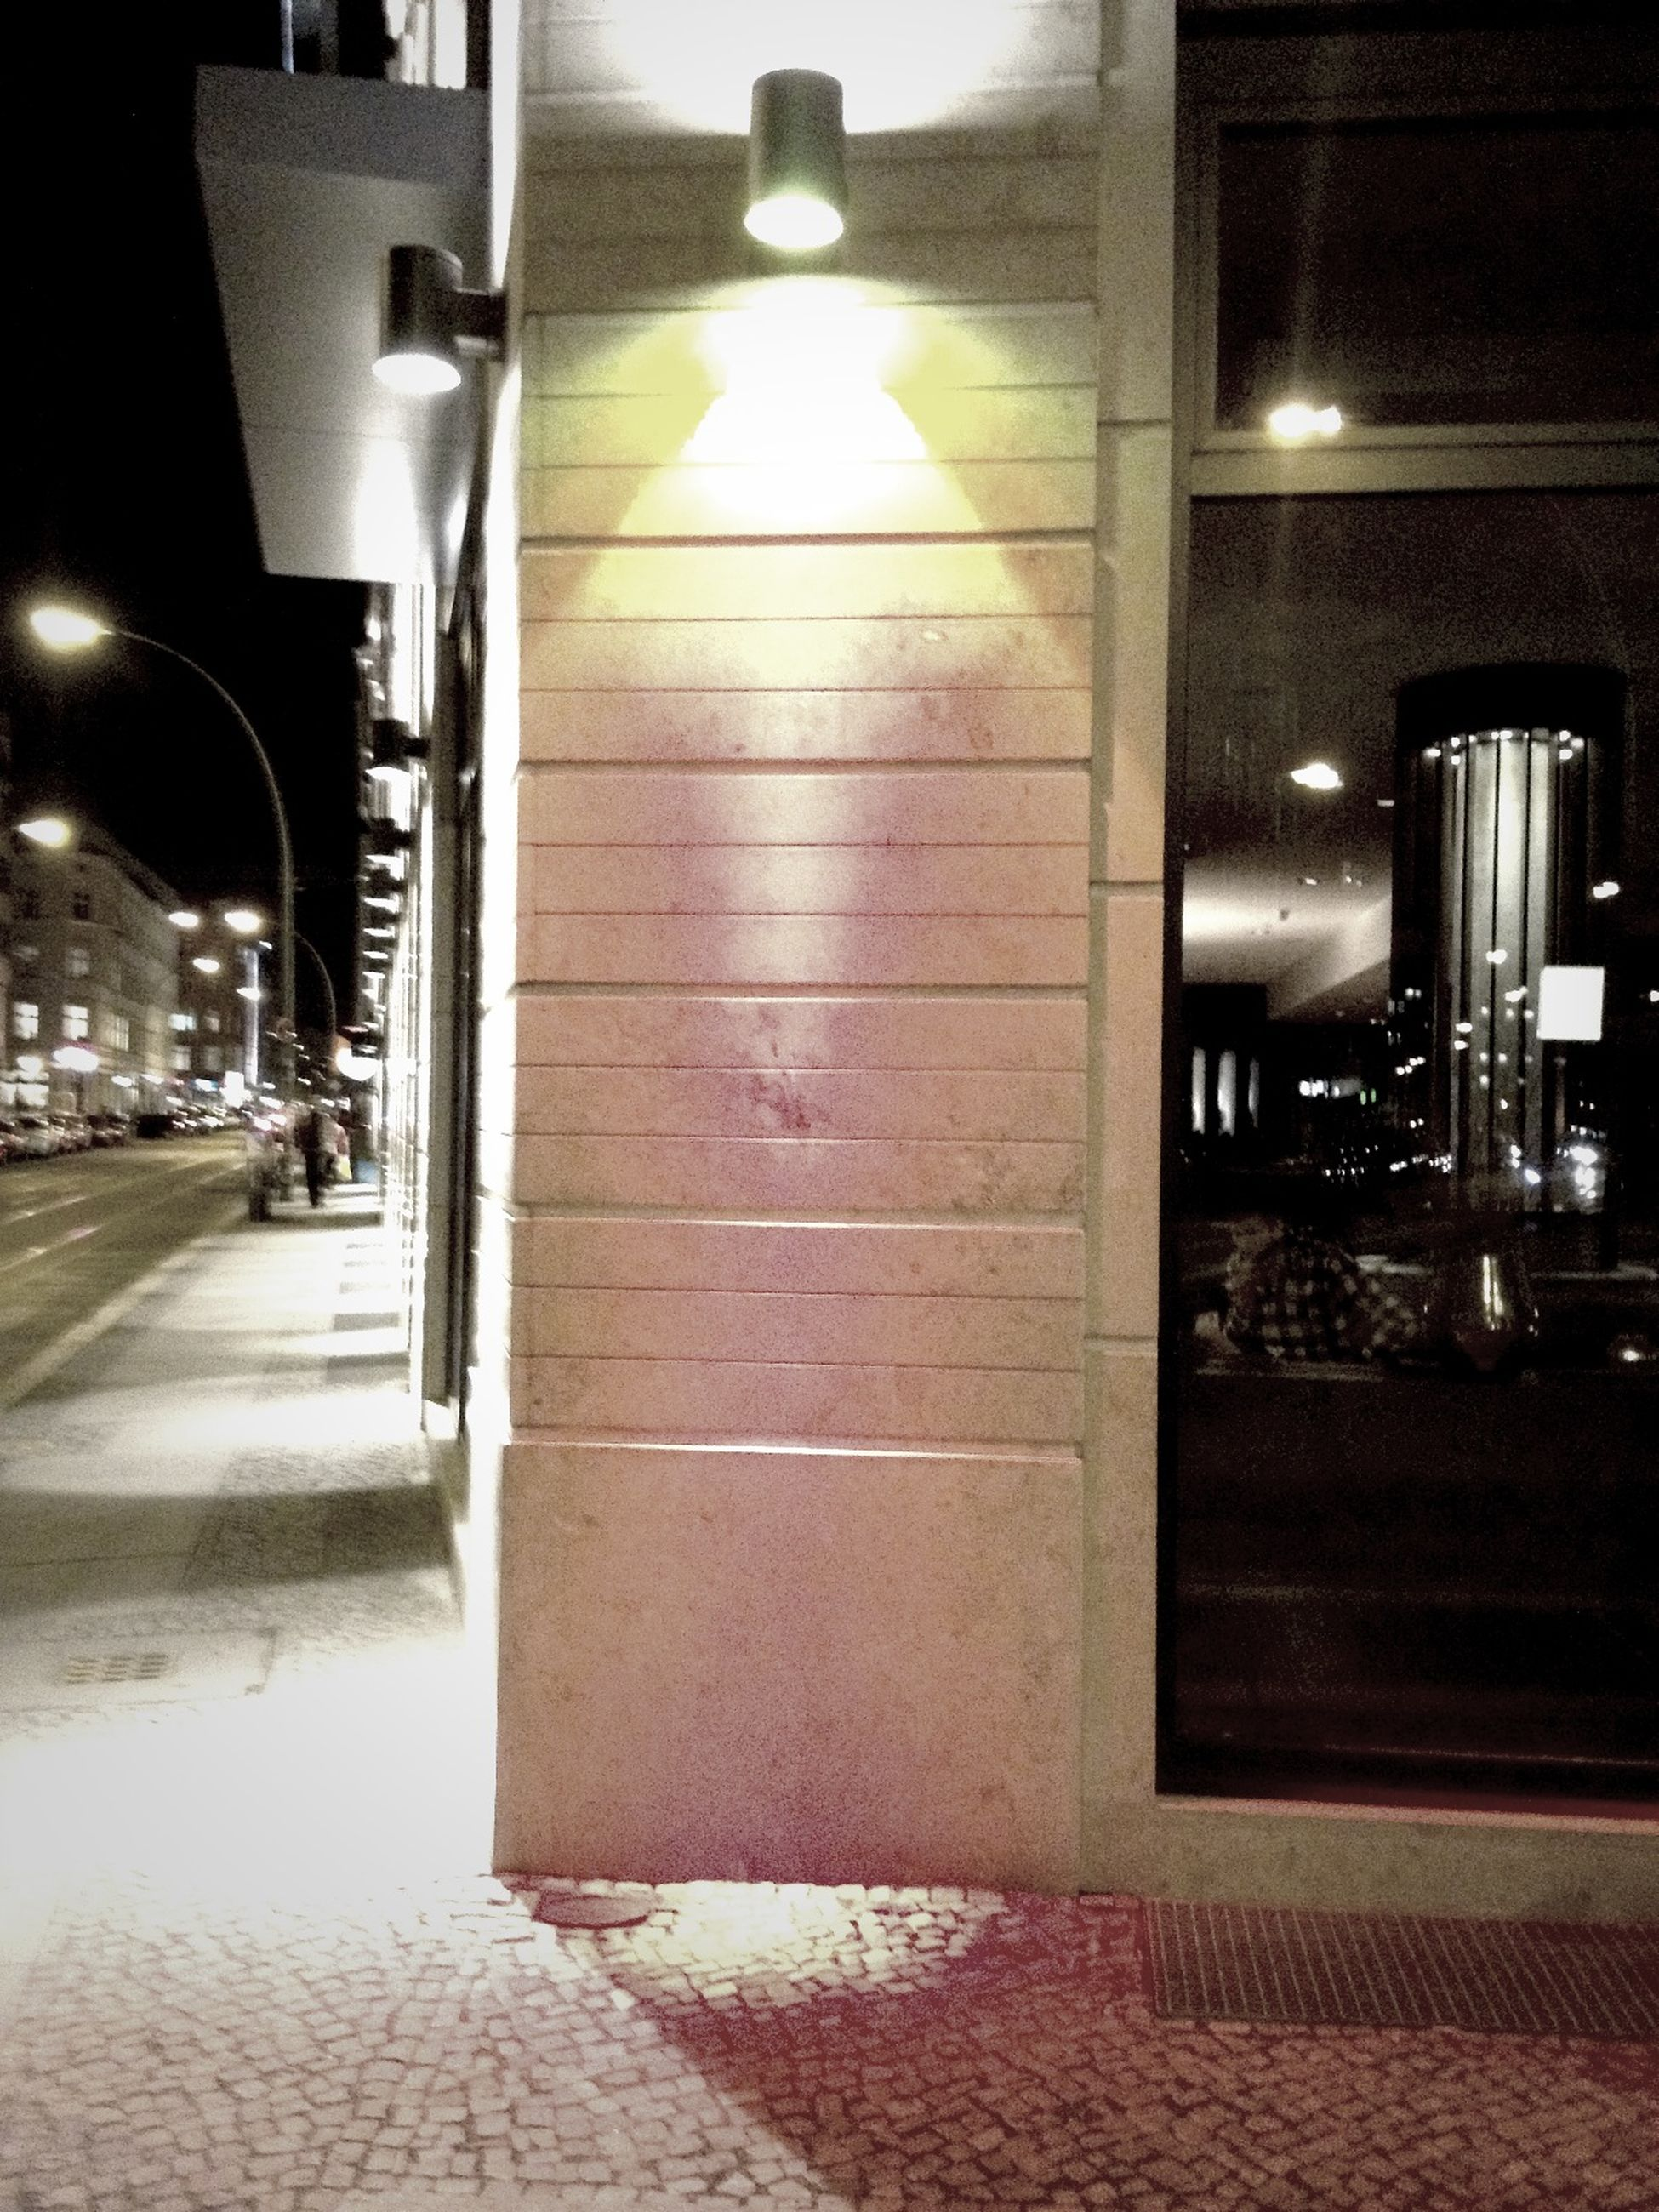 illuminated, architecture, built structure, night, building exterior, city, lighting equipment, architectural column, empty, indoors, incidental people, the way forward, building, transportation, street light, no people, street, absence, column, city life